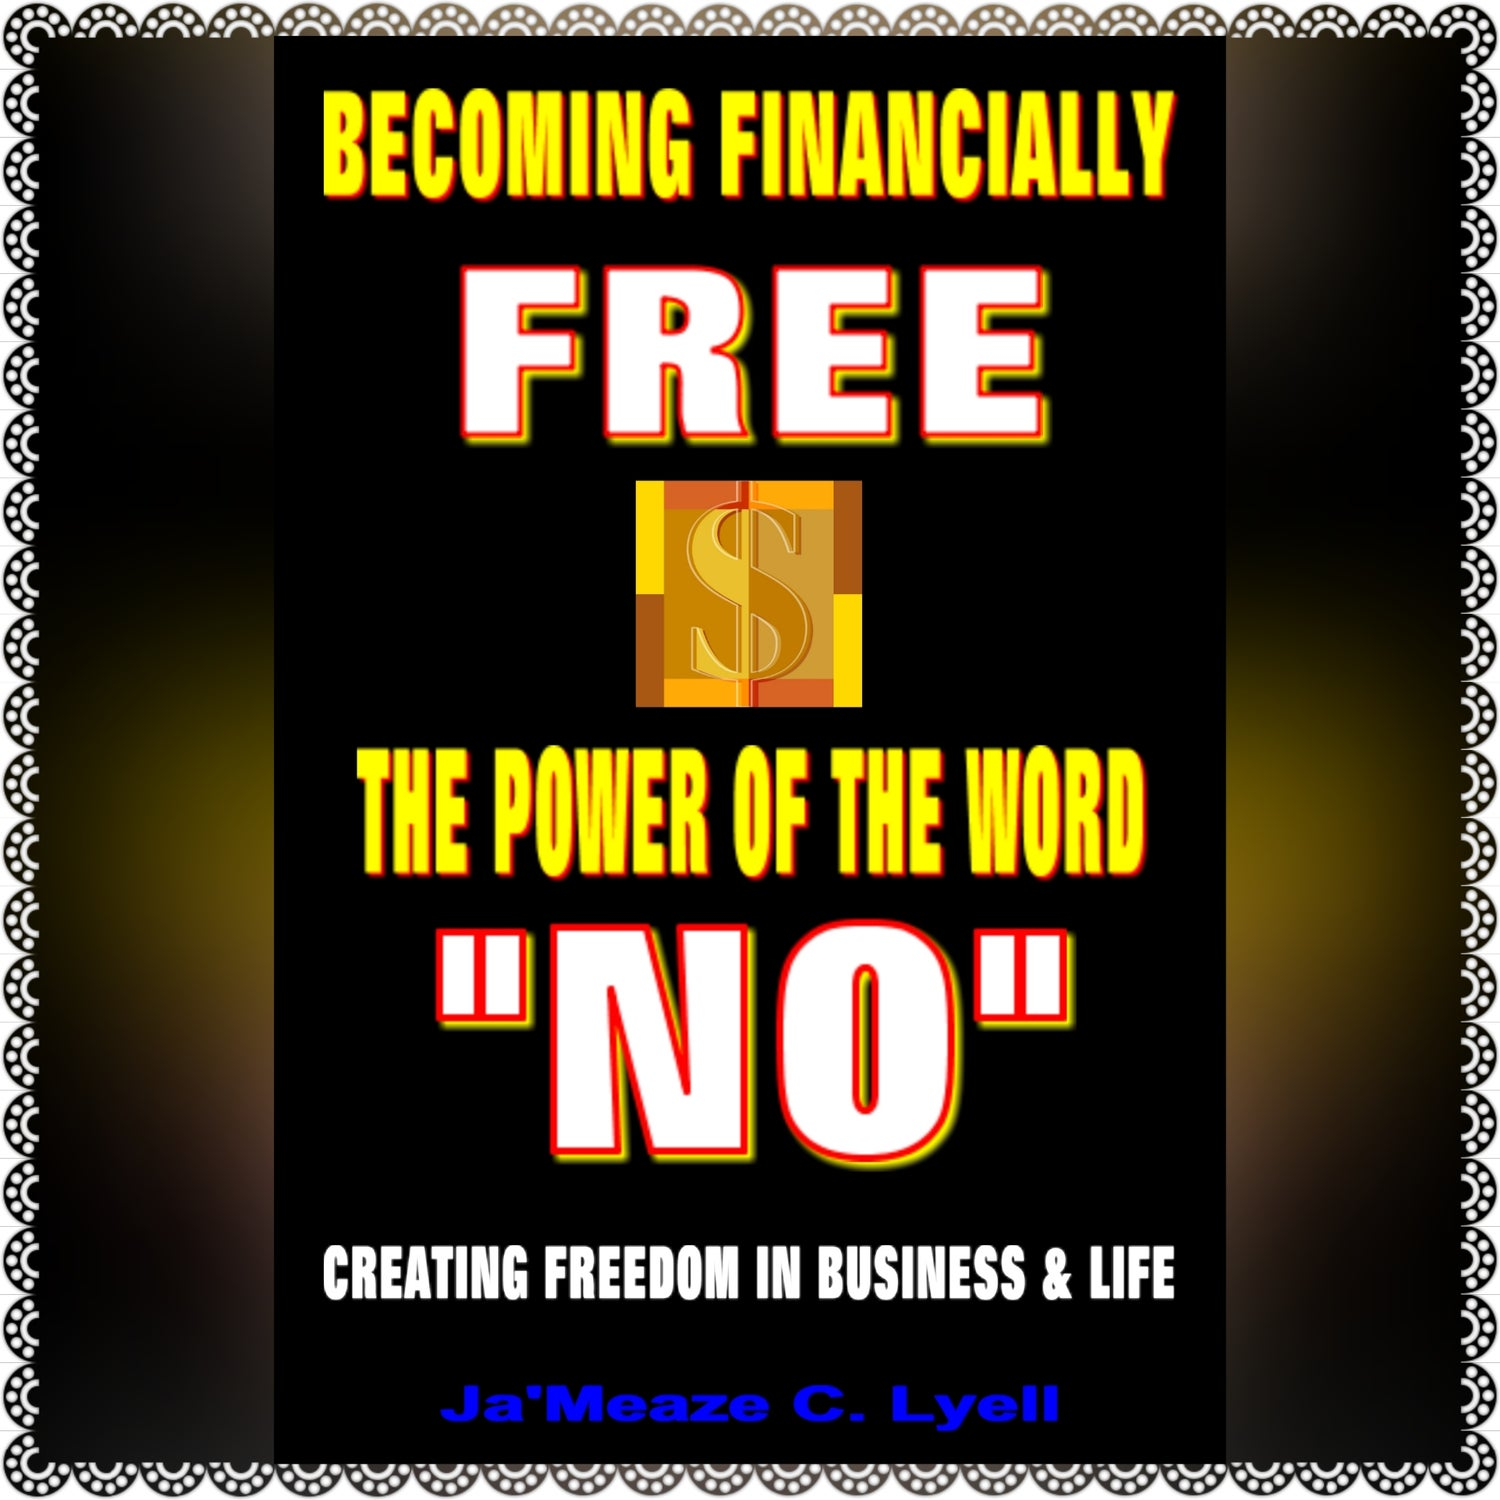 Image of BECOMING FINANCIALLY FREE